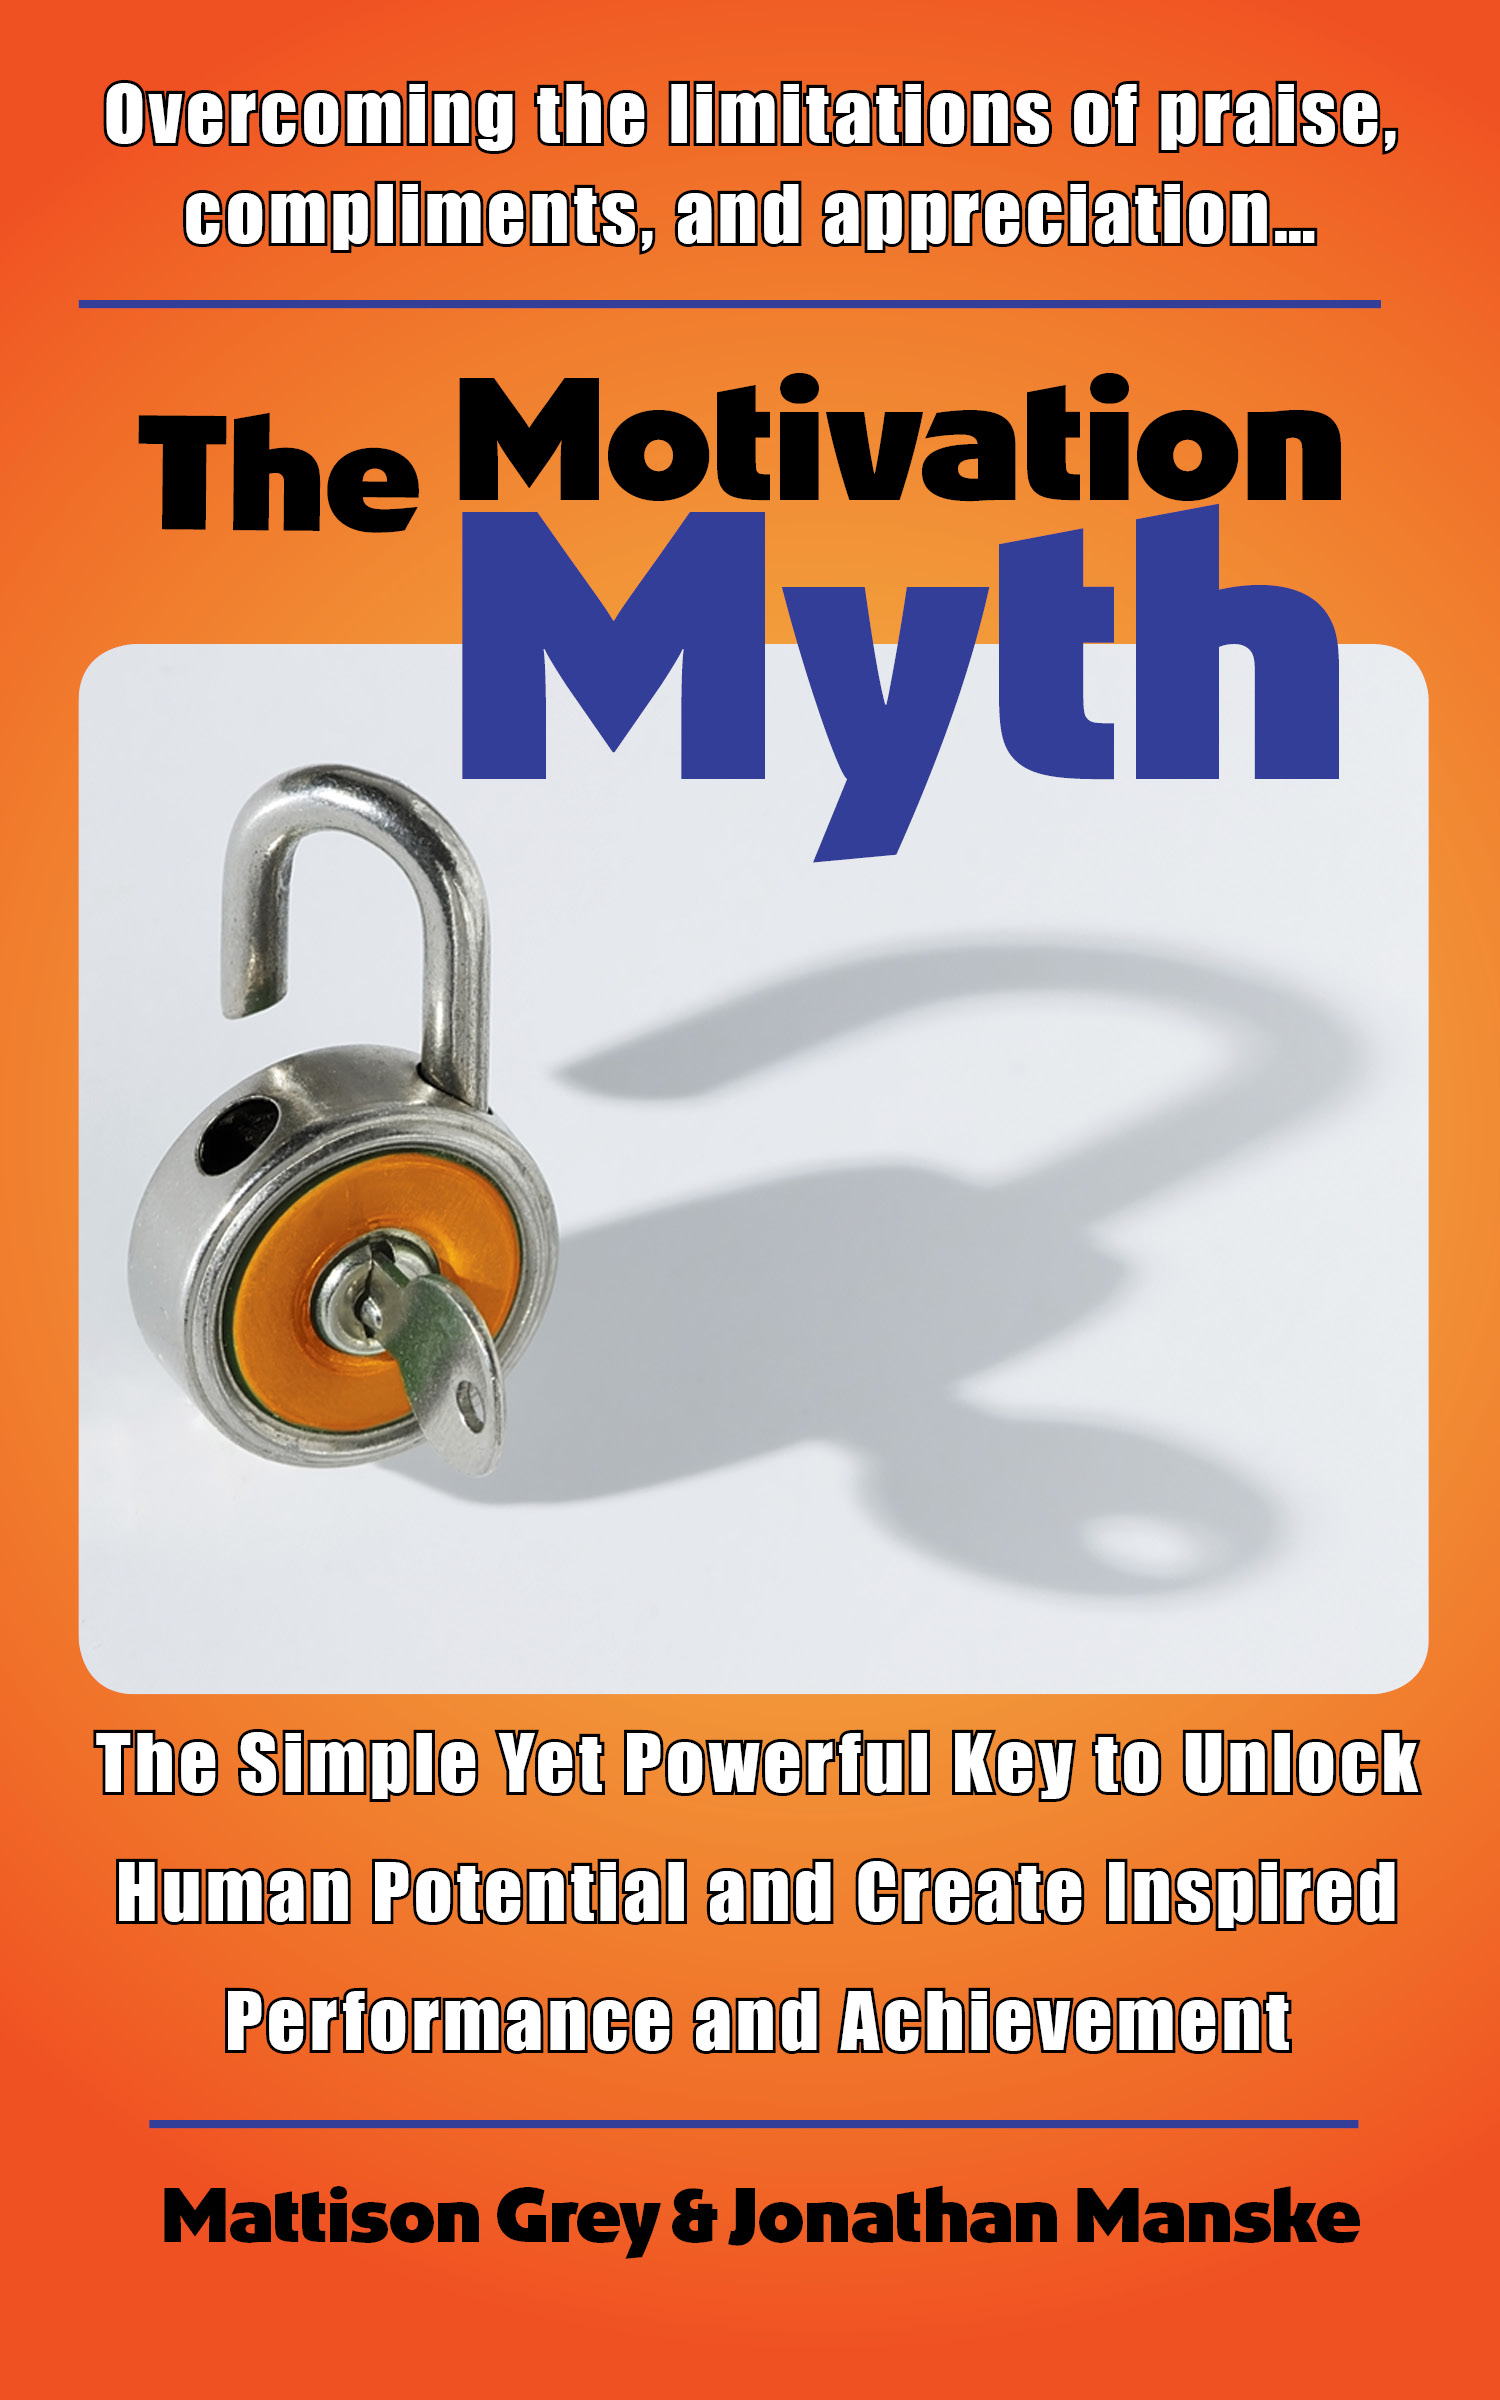 The Motivation Myth | Mattison Grey | Professional Business